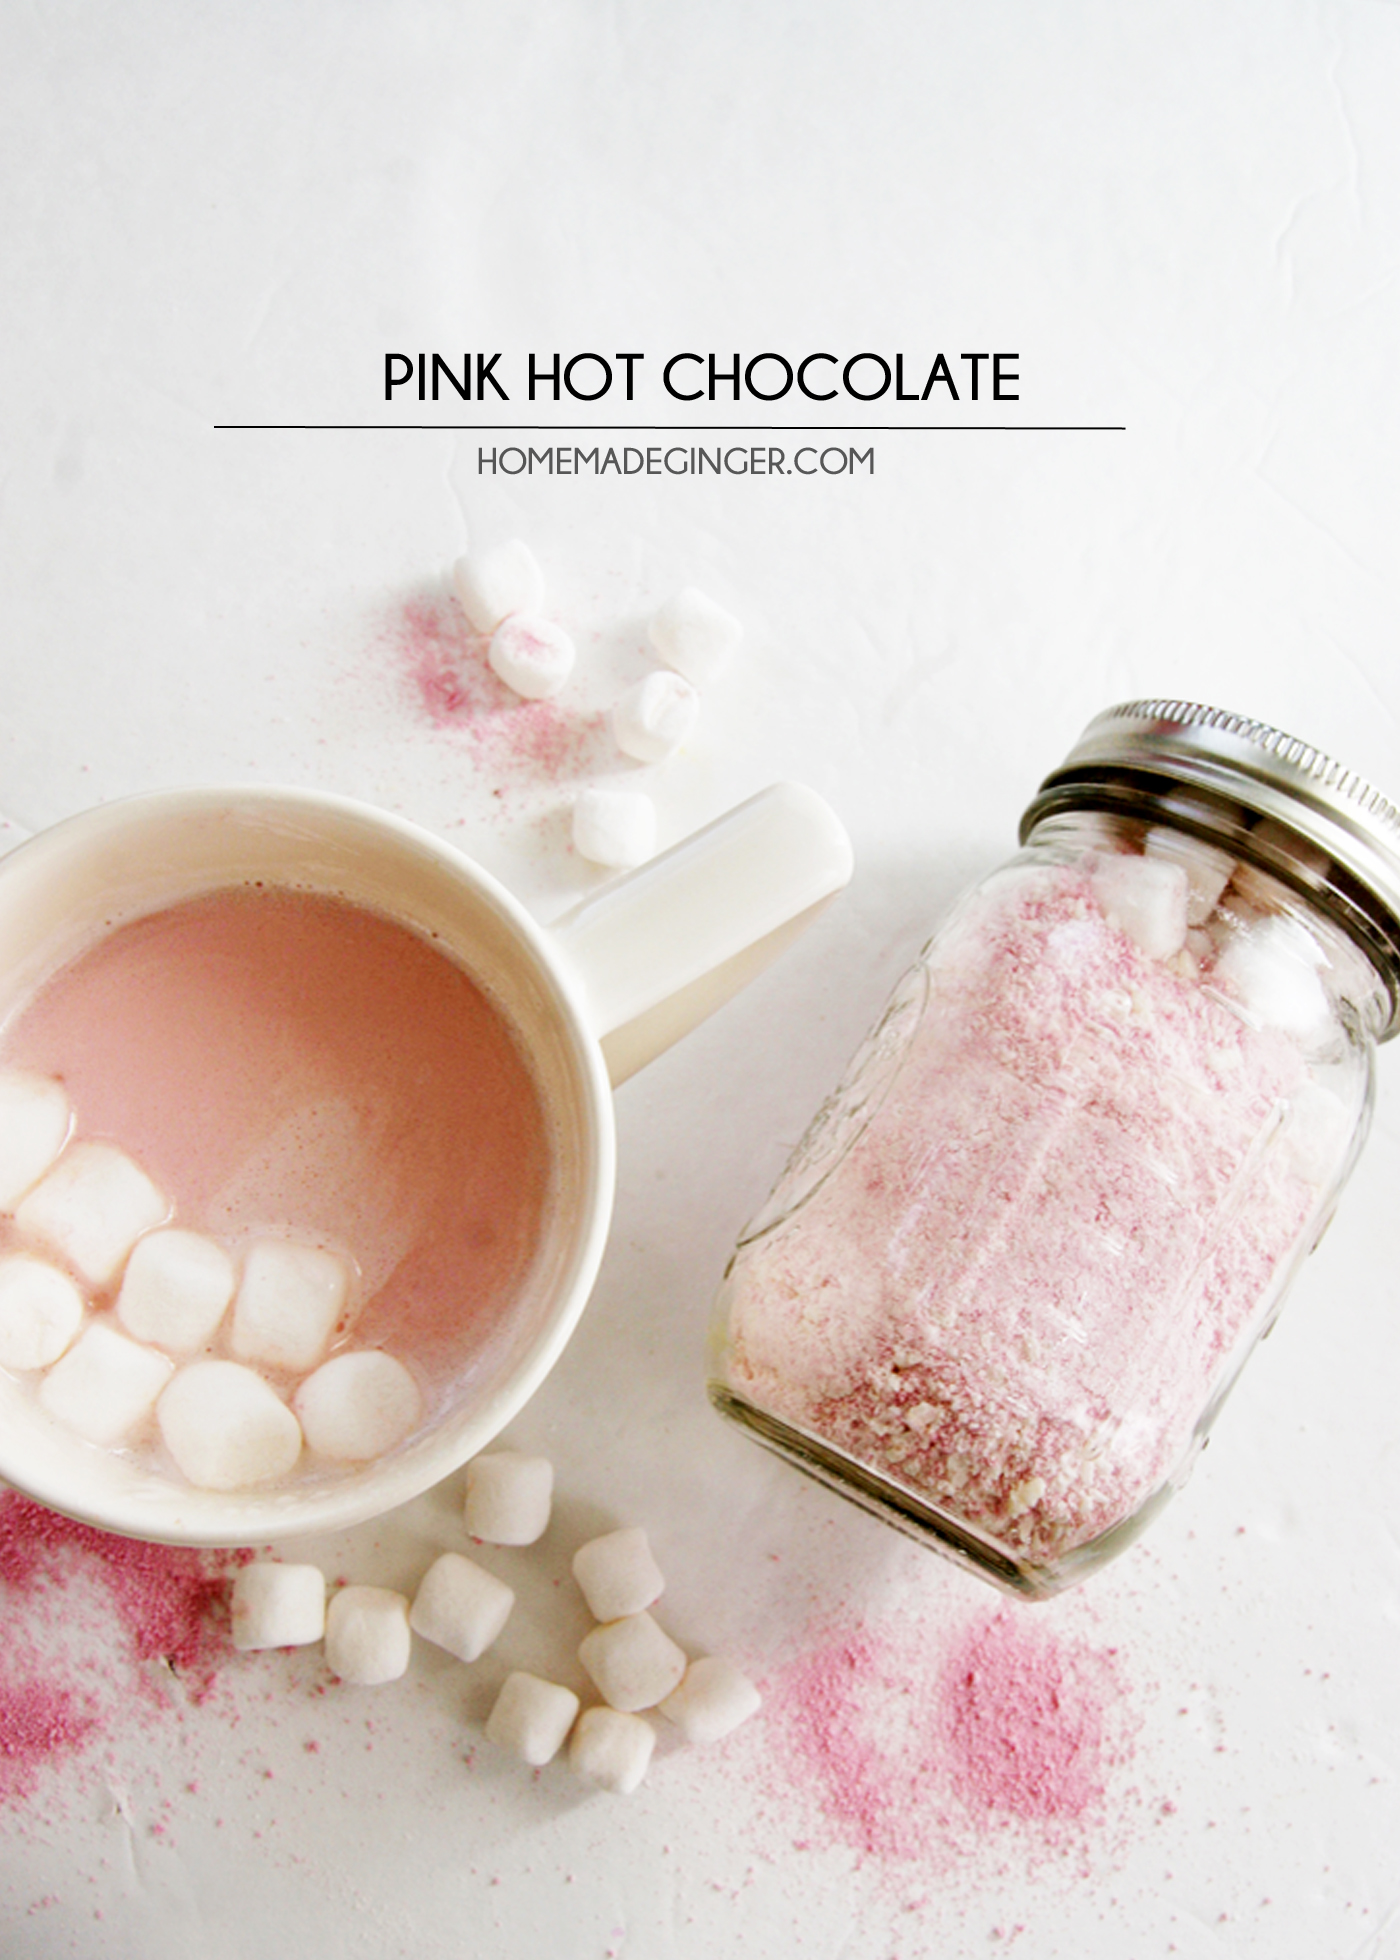 How to Make Pink Hot Chocolate - diycandy.com